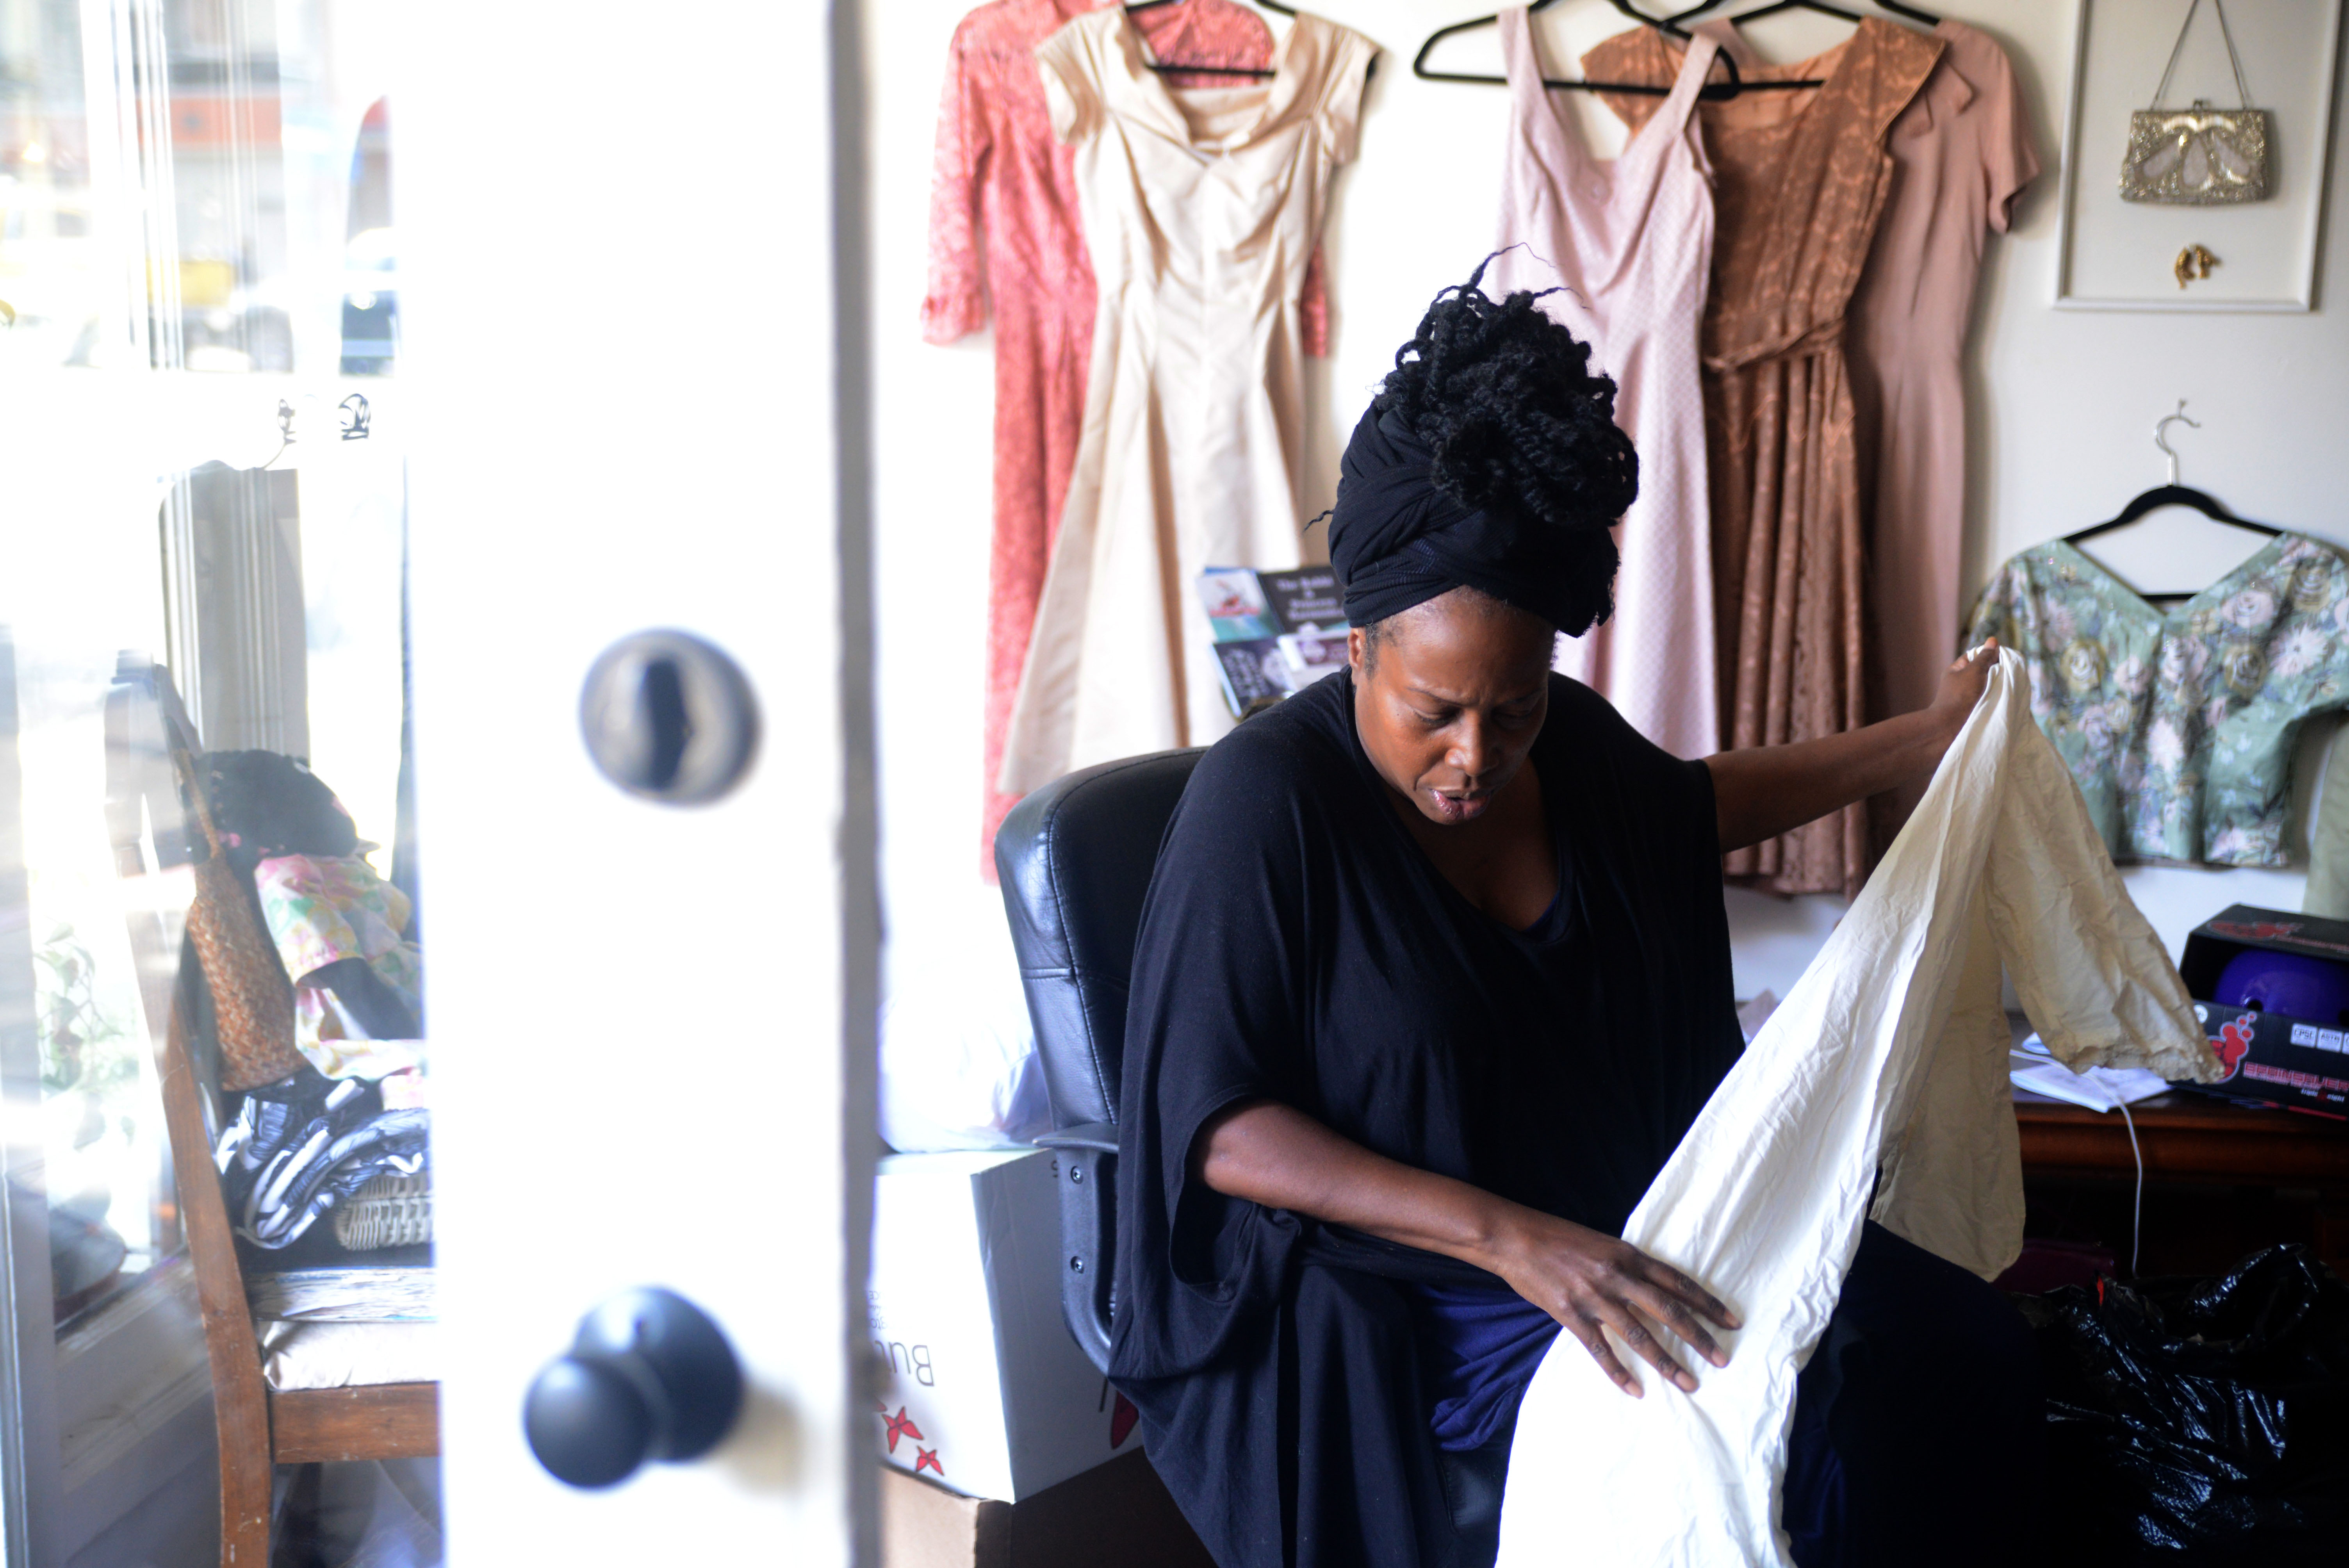 Evans sorts through clothes at her store in downtown Oakland.  (Travis Shafer/Peninsula Press)